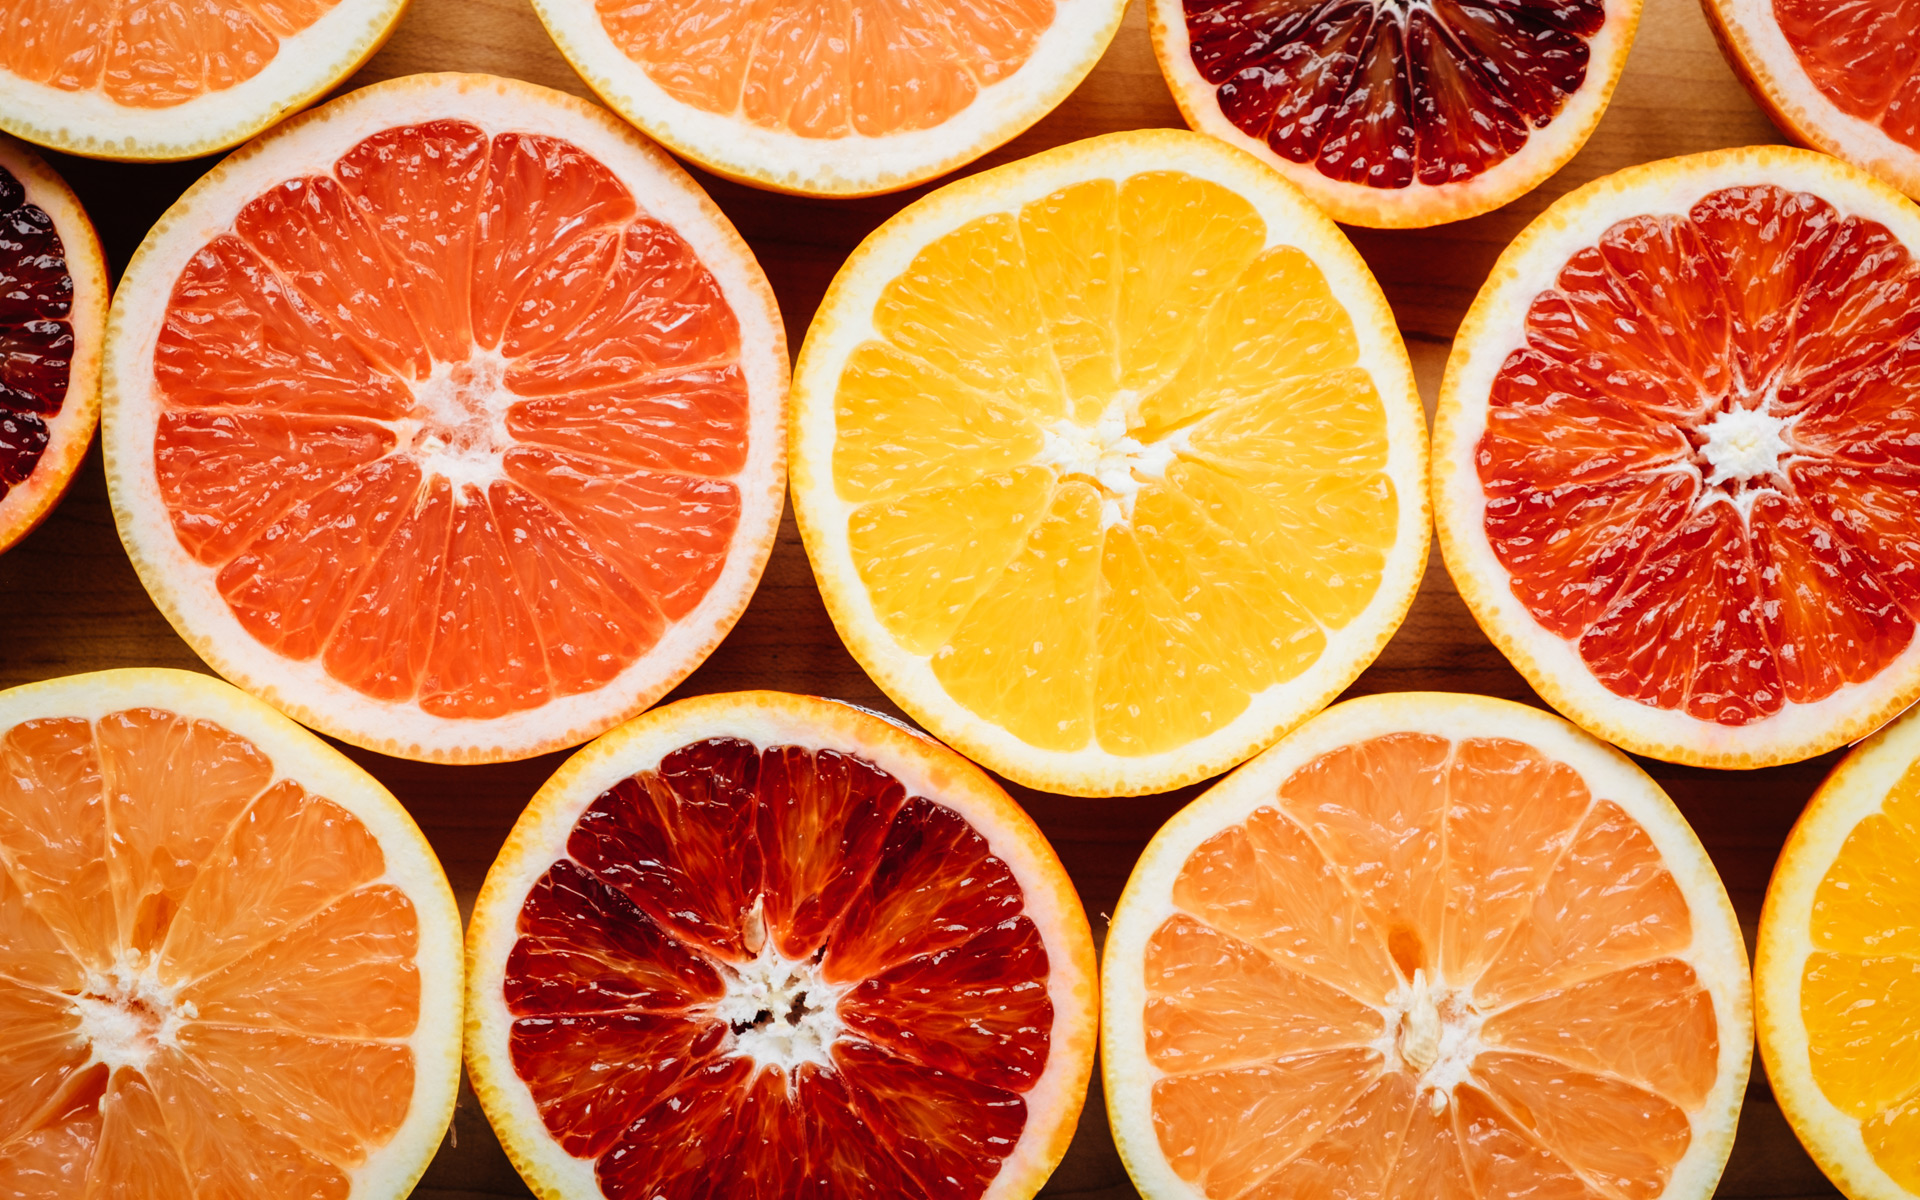 Citrus cross section